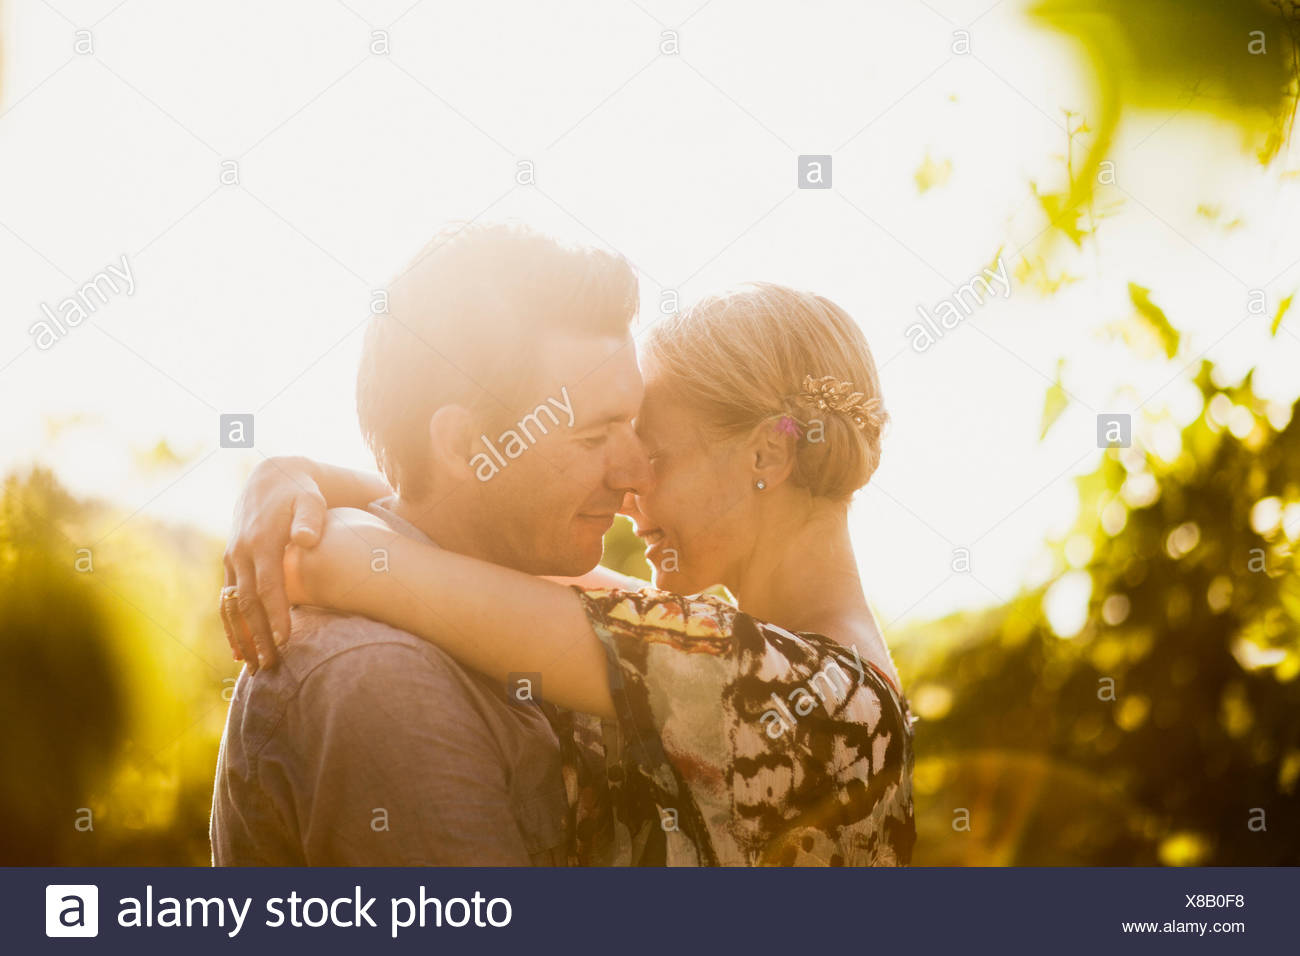 Italy, Tuscany, Portrait of mature couple embracing - Stock Image